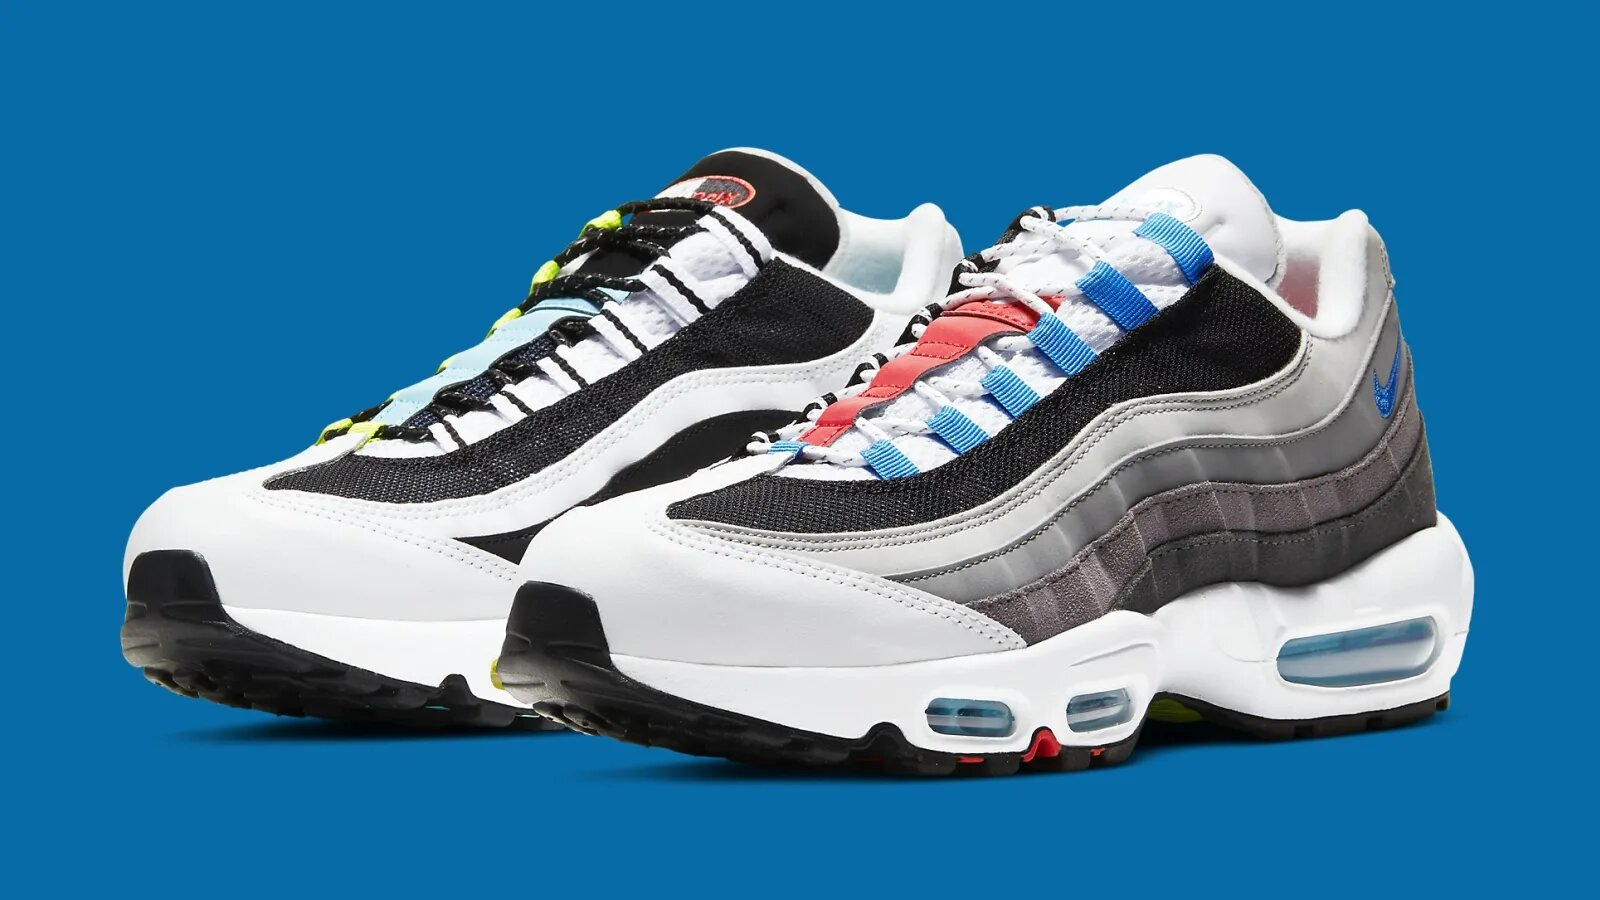 Nike Air Max 95 ''Greedy 2.0'' CJ0589 001 Sneaker Style